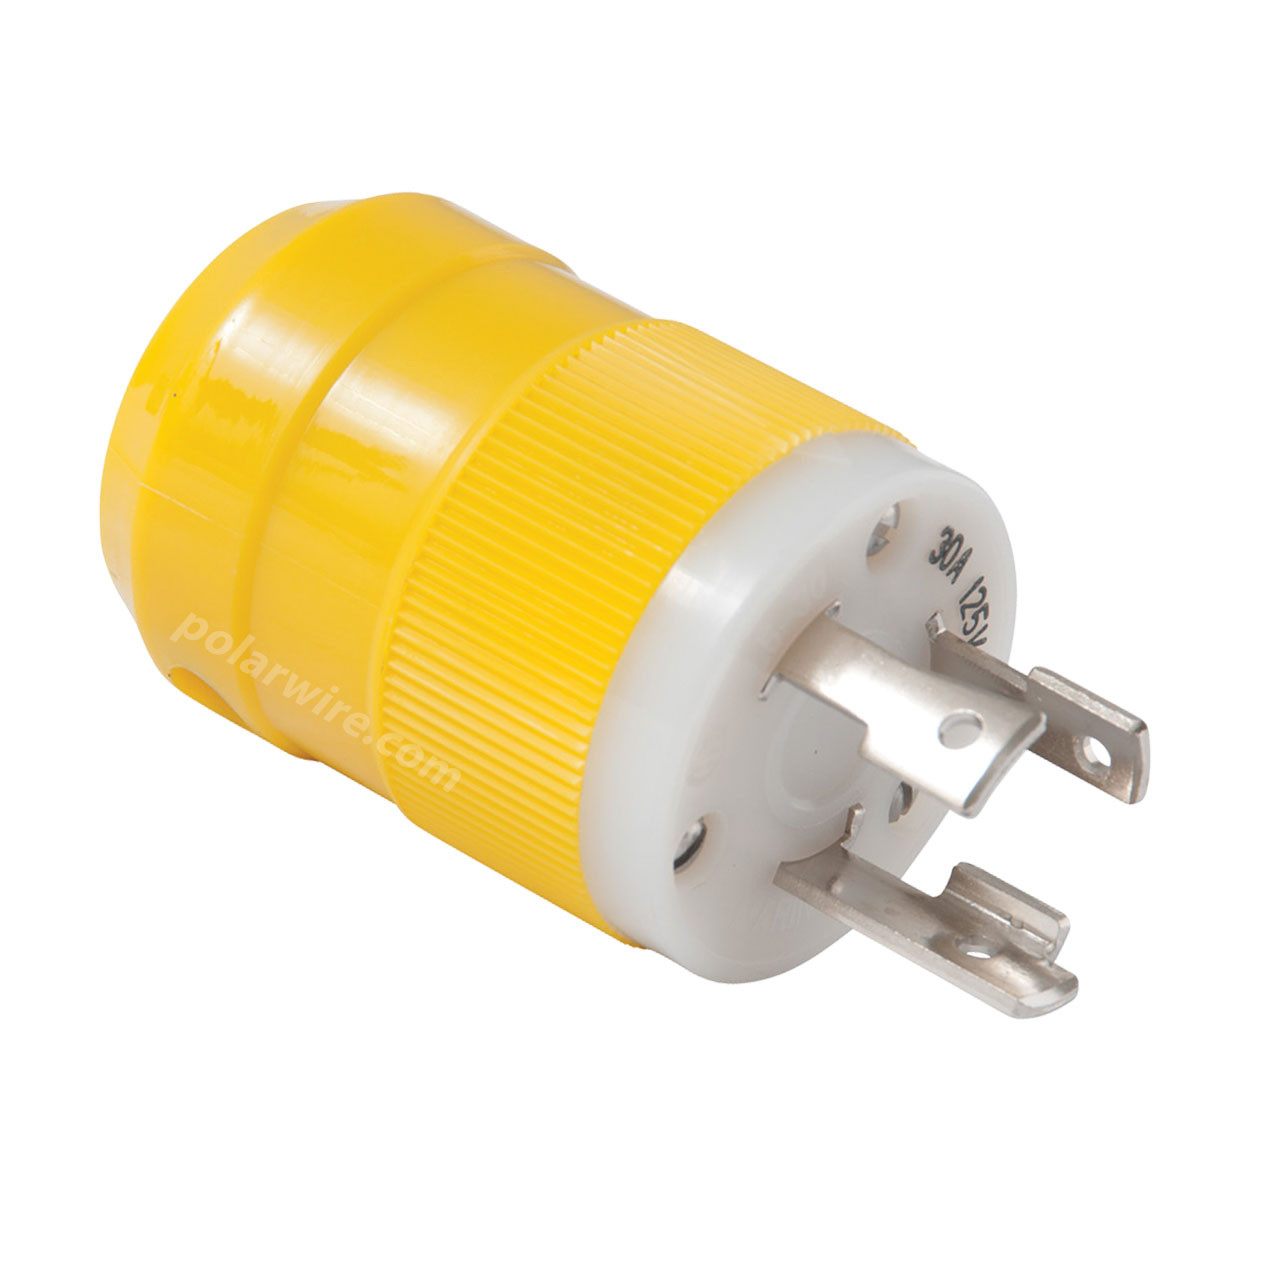 30A 125V Locking Blade Male Shore Power Plug